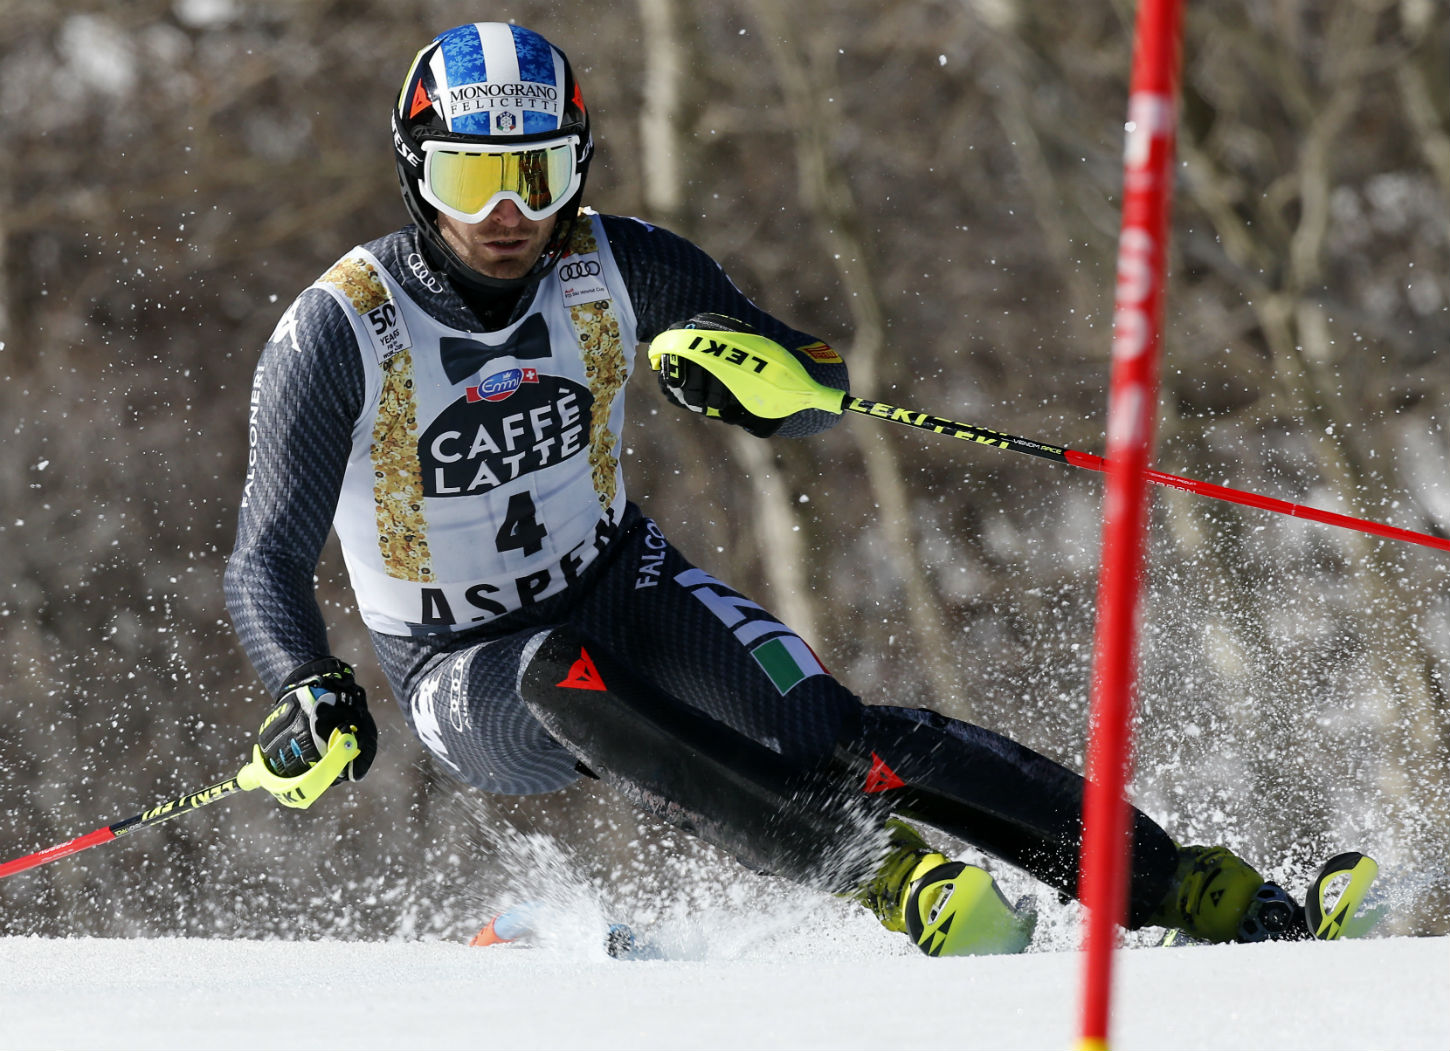 Manfred Moelgg in azione ad Aspen ©Agence Zoom